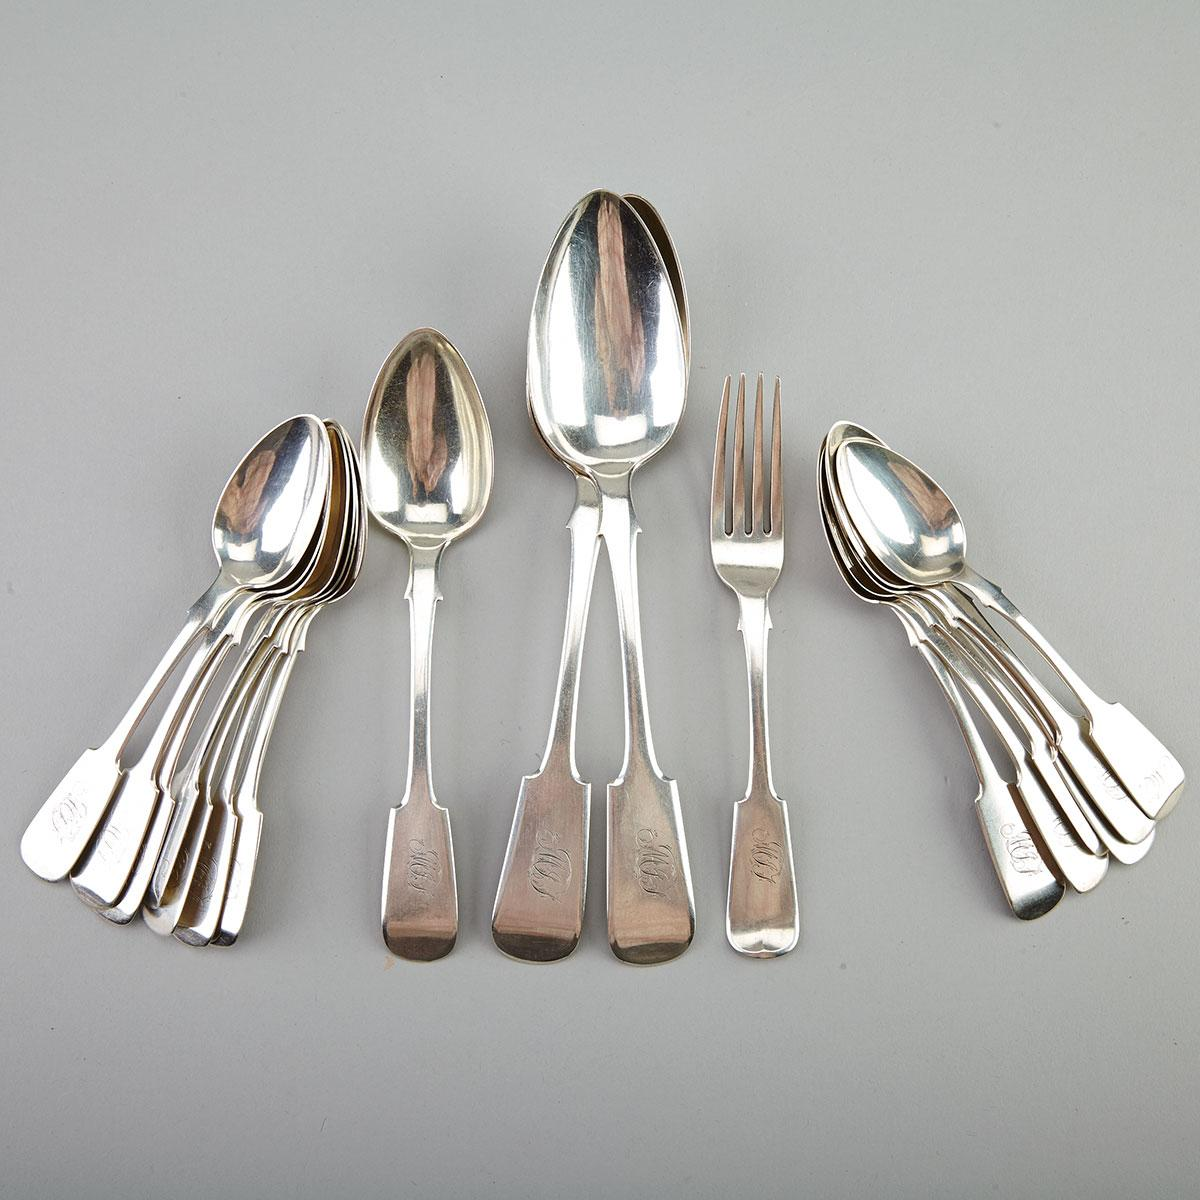 Thirteen Canadian Silver Fiddle Pattern Tea Spoons, Dessert Spoon and Fork and Pair of Table Spoons, Joseph Robinson & Co., Toronto, Ont., c.1865-70